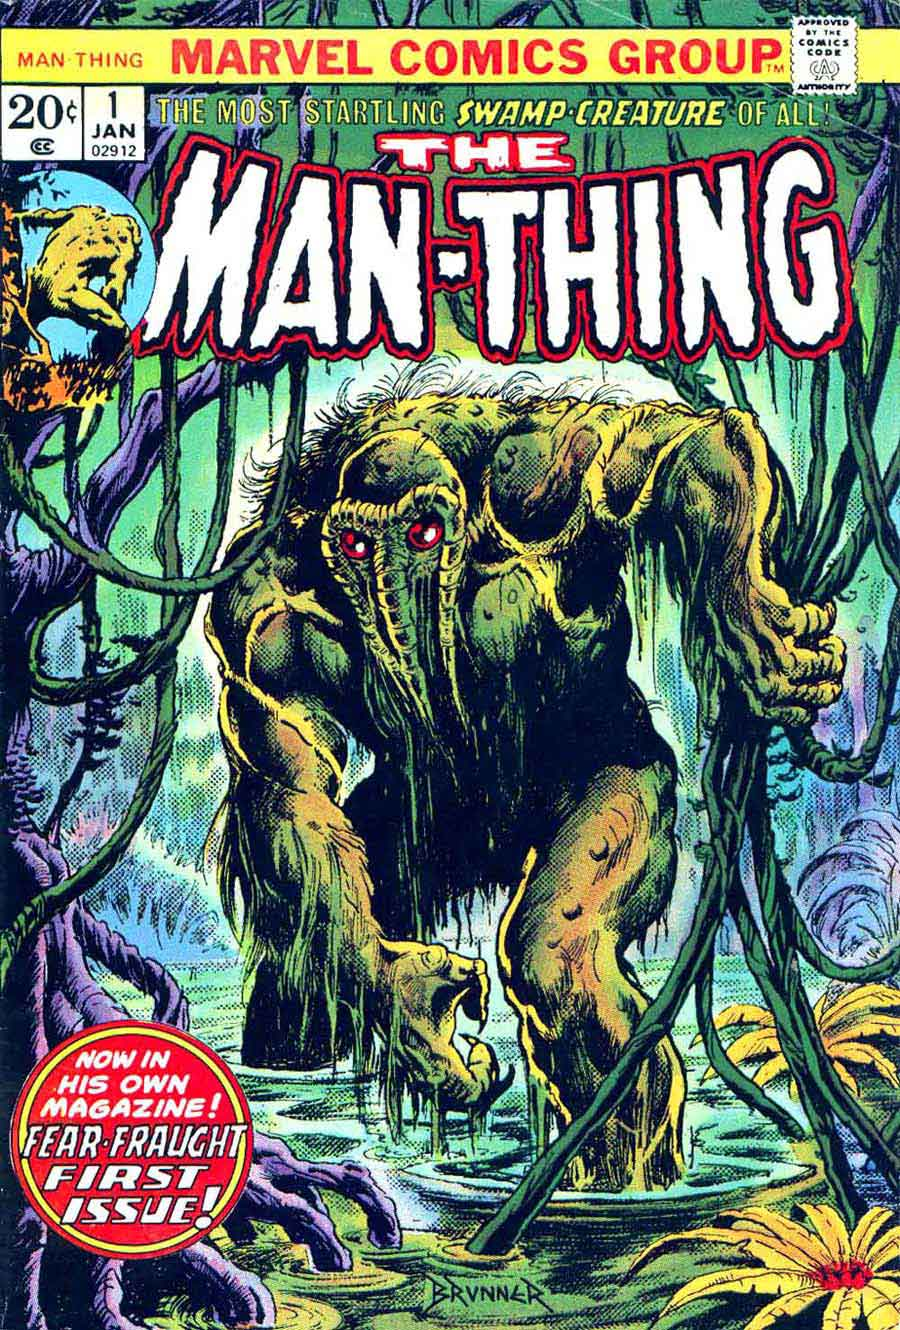 Man-Thing v1 #1 marvel 1970s bronze age comic book cover art by Frank Brunner